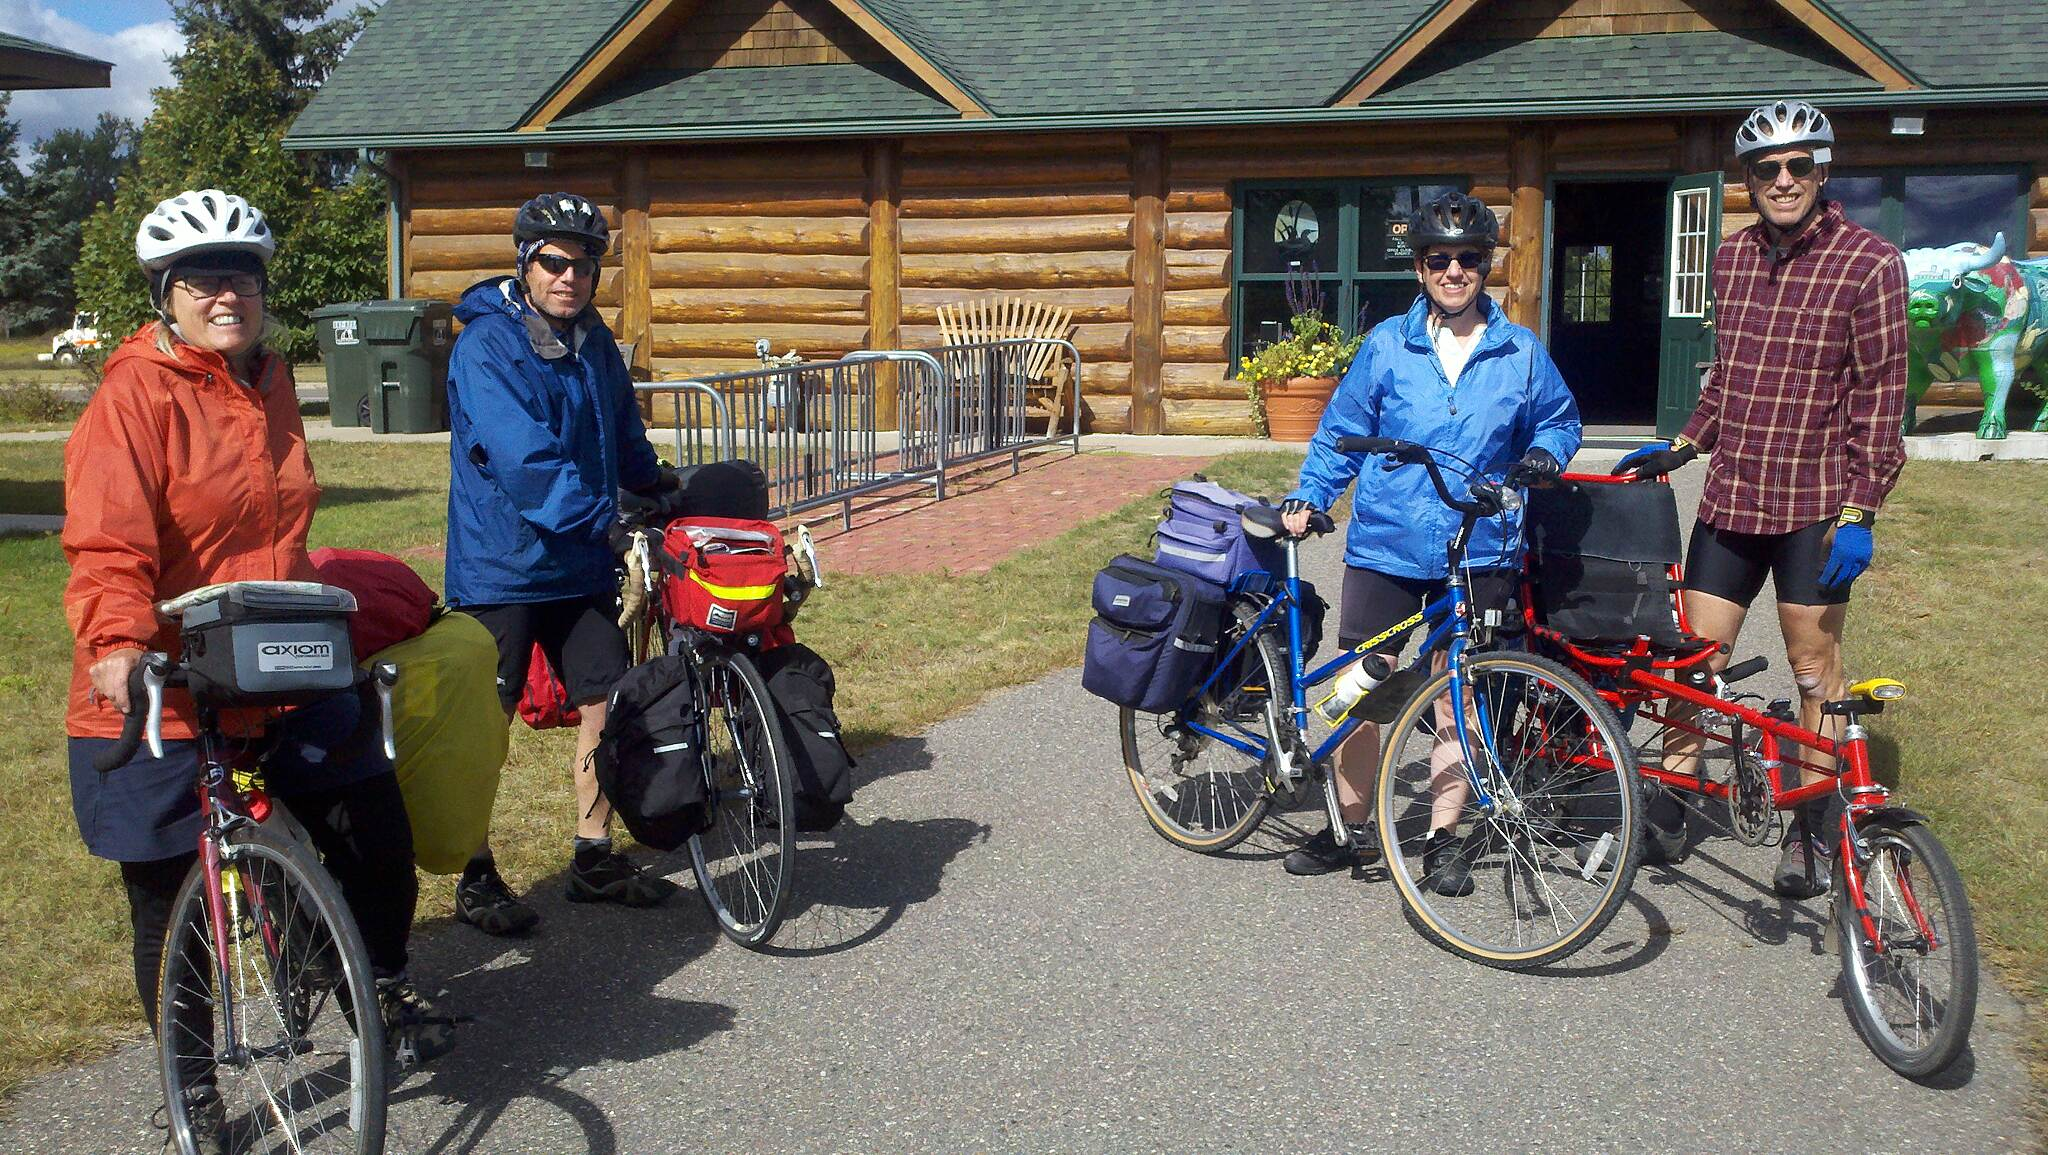 Paul Bunyan State Trail Long Distance Bikes On Paul Bunyan Trail The duo on the left stopped at the Pine River Info Center on their way to Istanbul, Turkey.  They were from Winnipeg, Manitoba.  The duo on the right were biking from New Orleans to the headwaters of the Mississippi River at Itasca State Park.